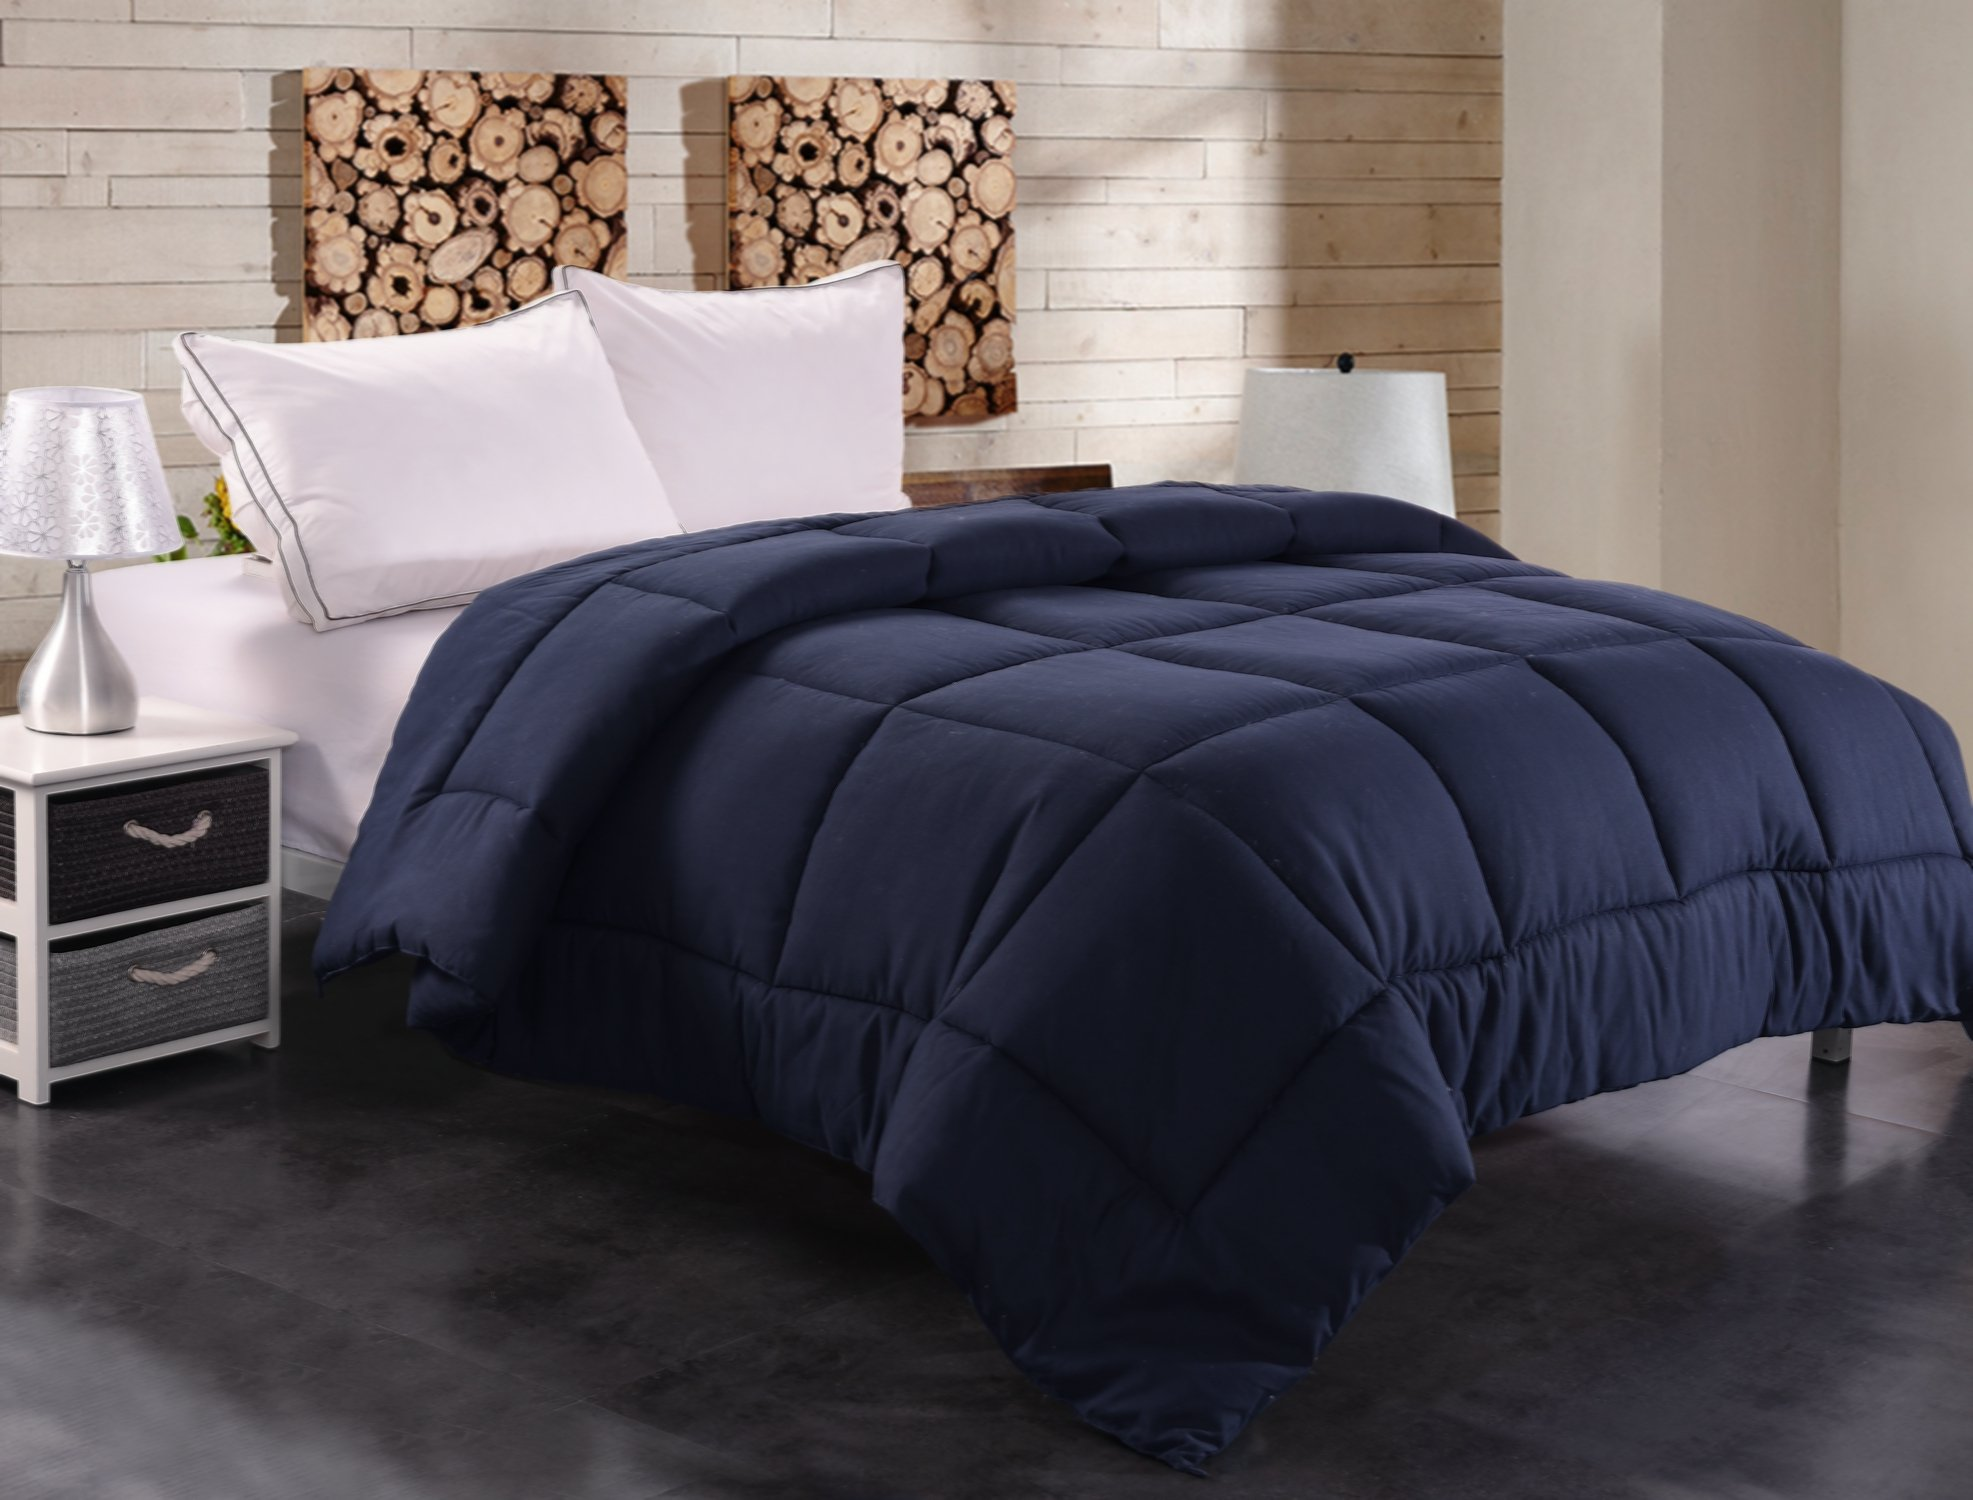 Toodou Soft Thick Quilt Down Alternative King Comforter For All Season, Luxury Hotel Collection Reversible Duvet Insert With Corner Tab, Navy Blue